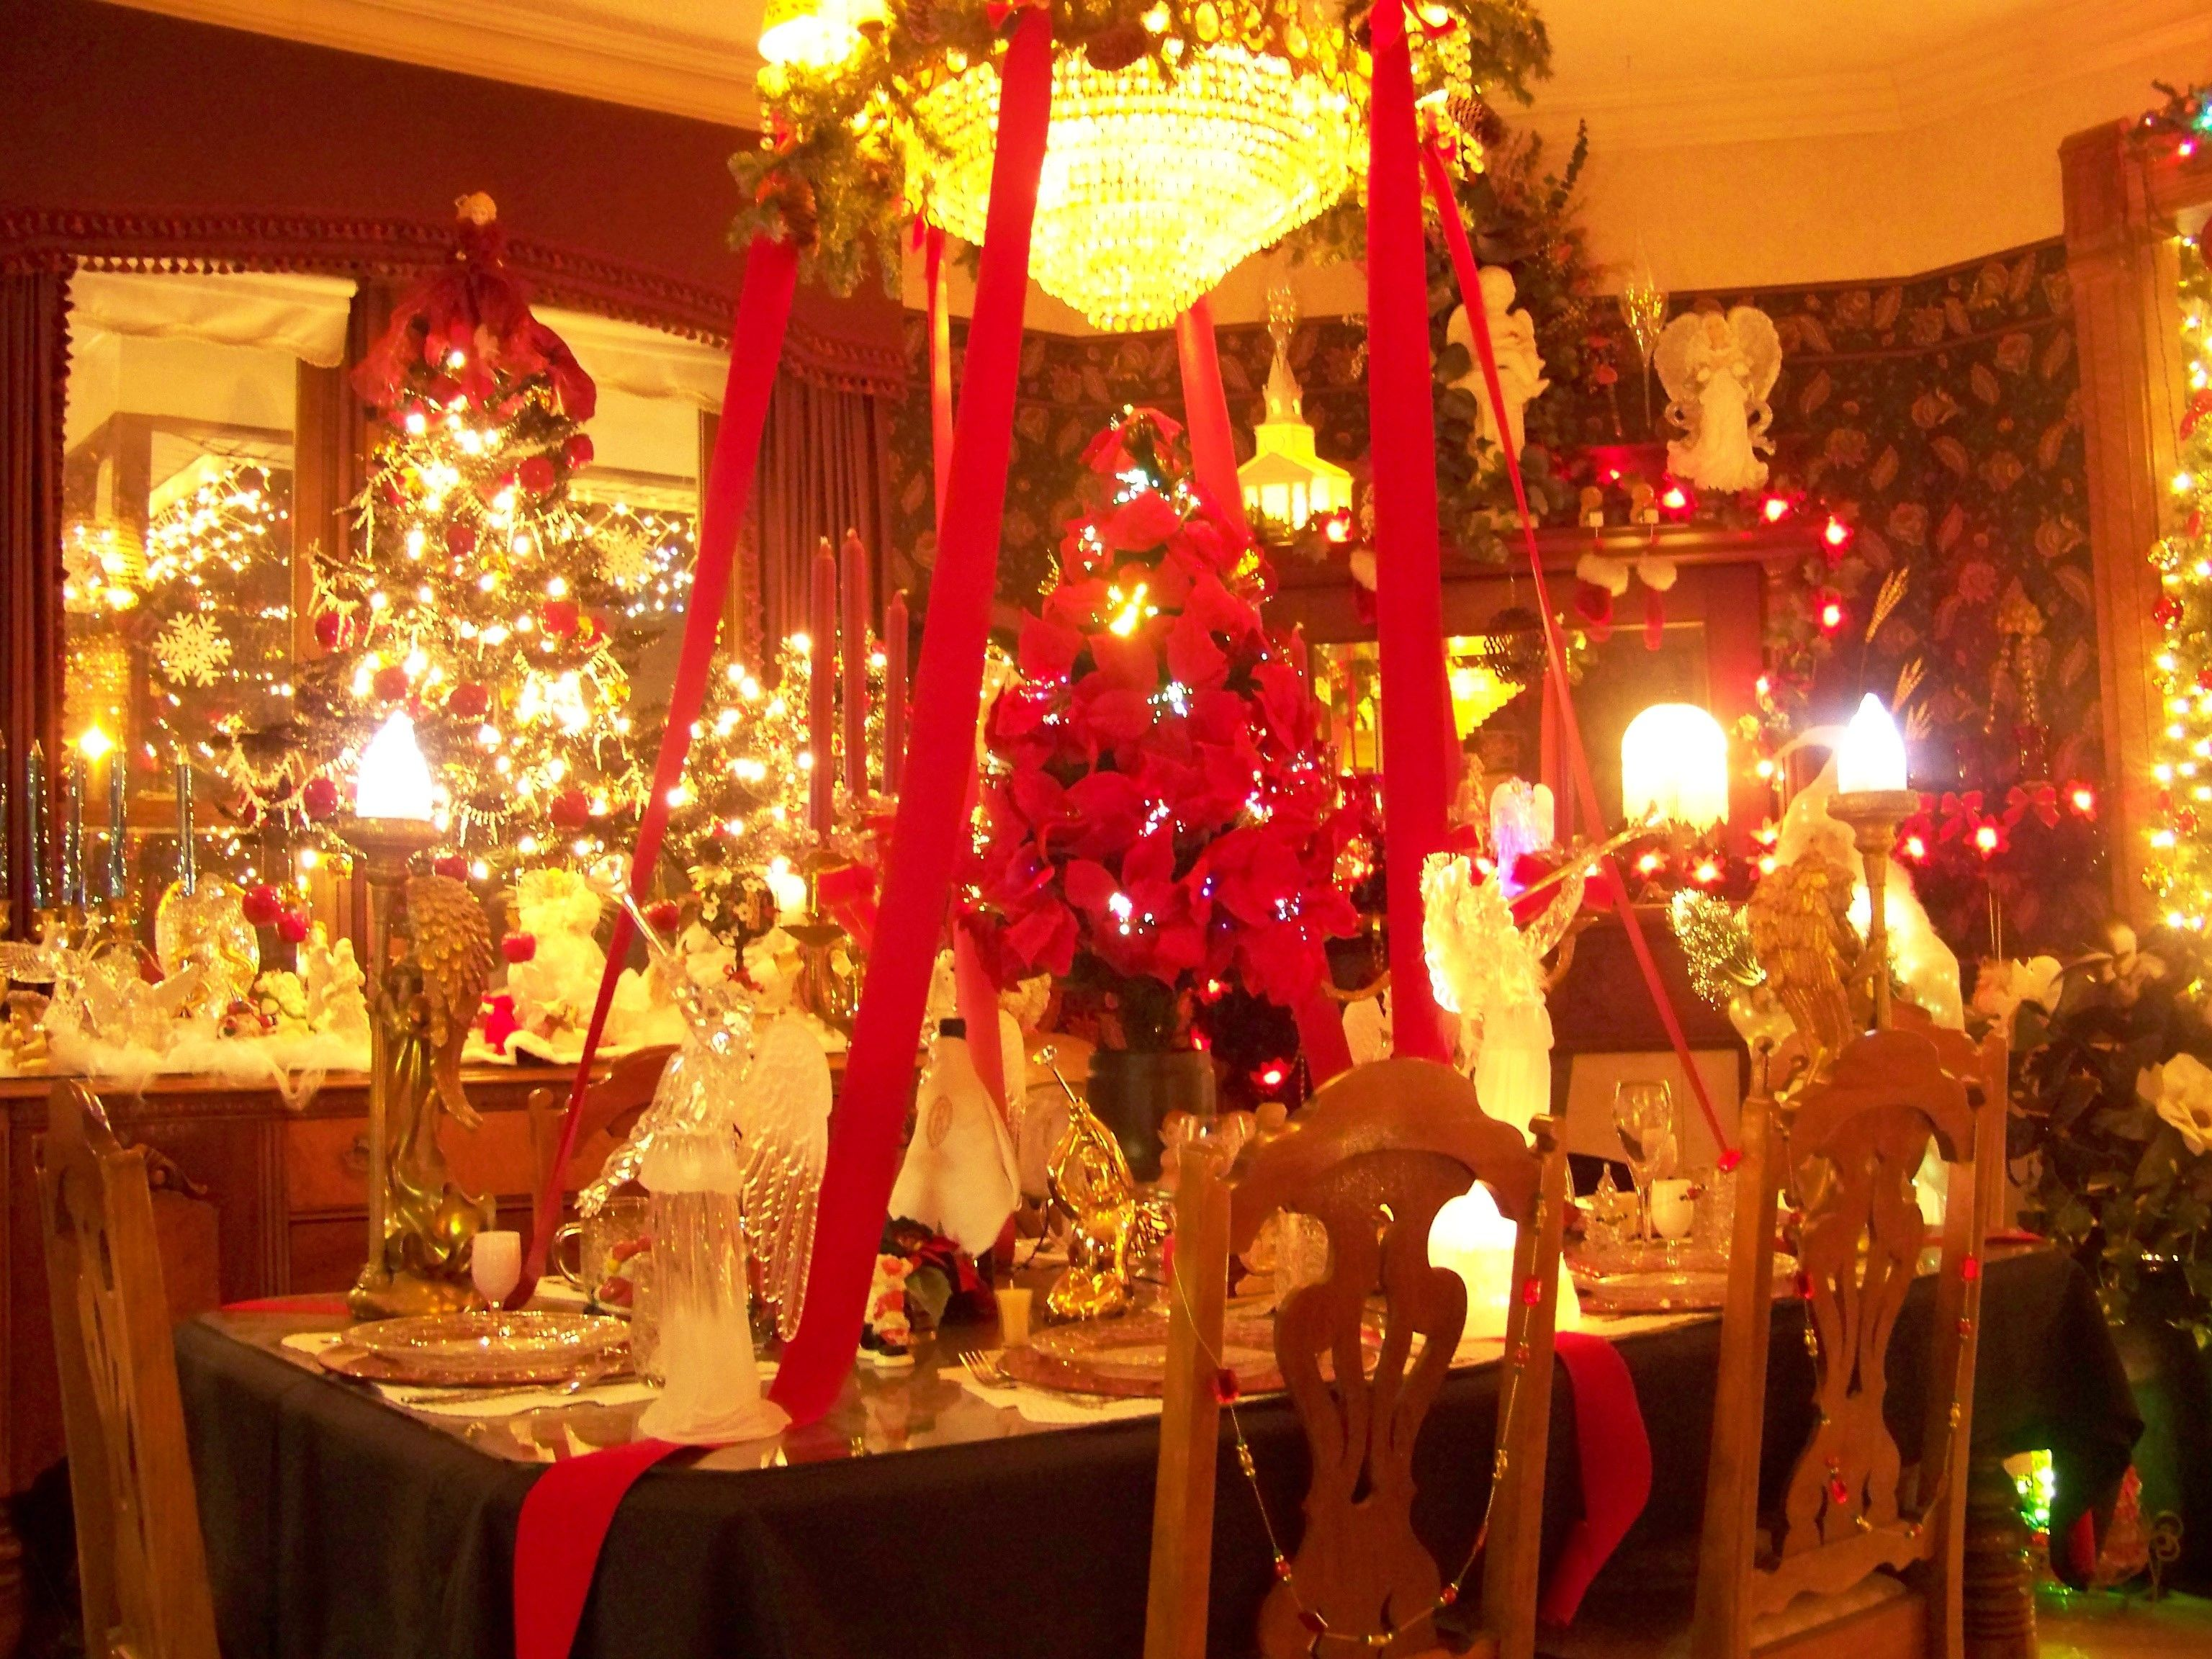 Homes Decorated For Christmas On The Inside decorating inside your house for christmas - house and home design